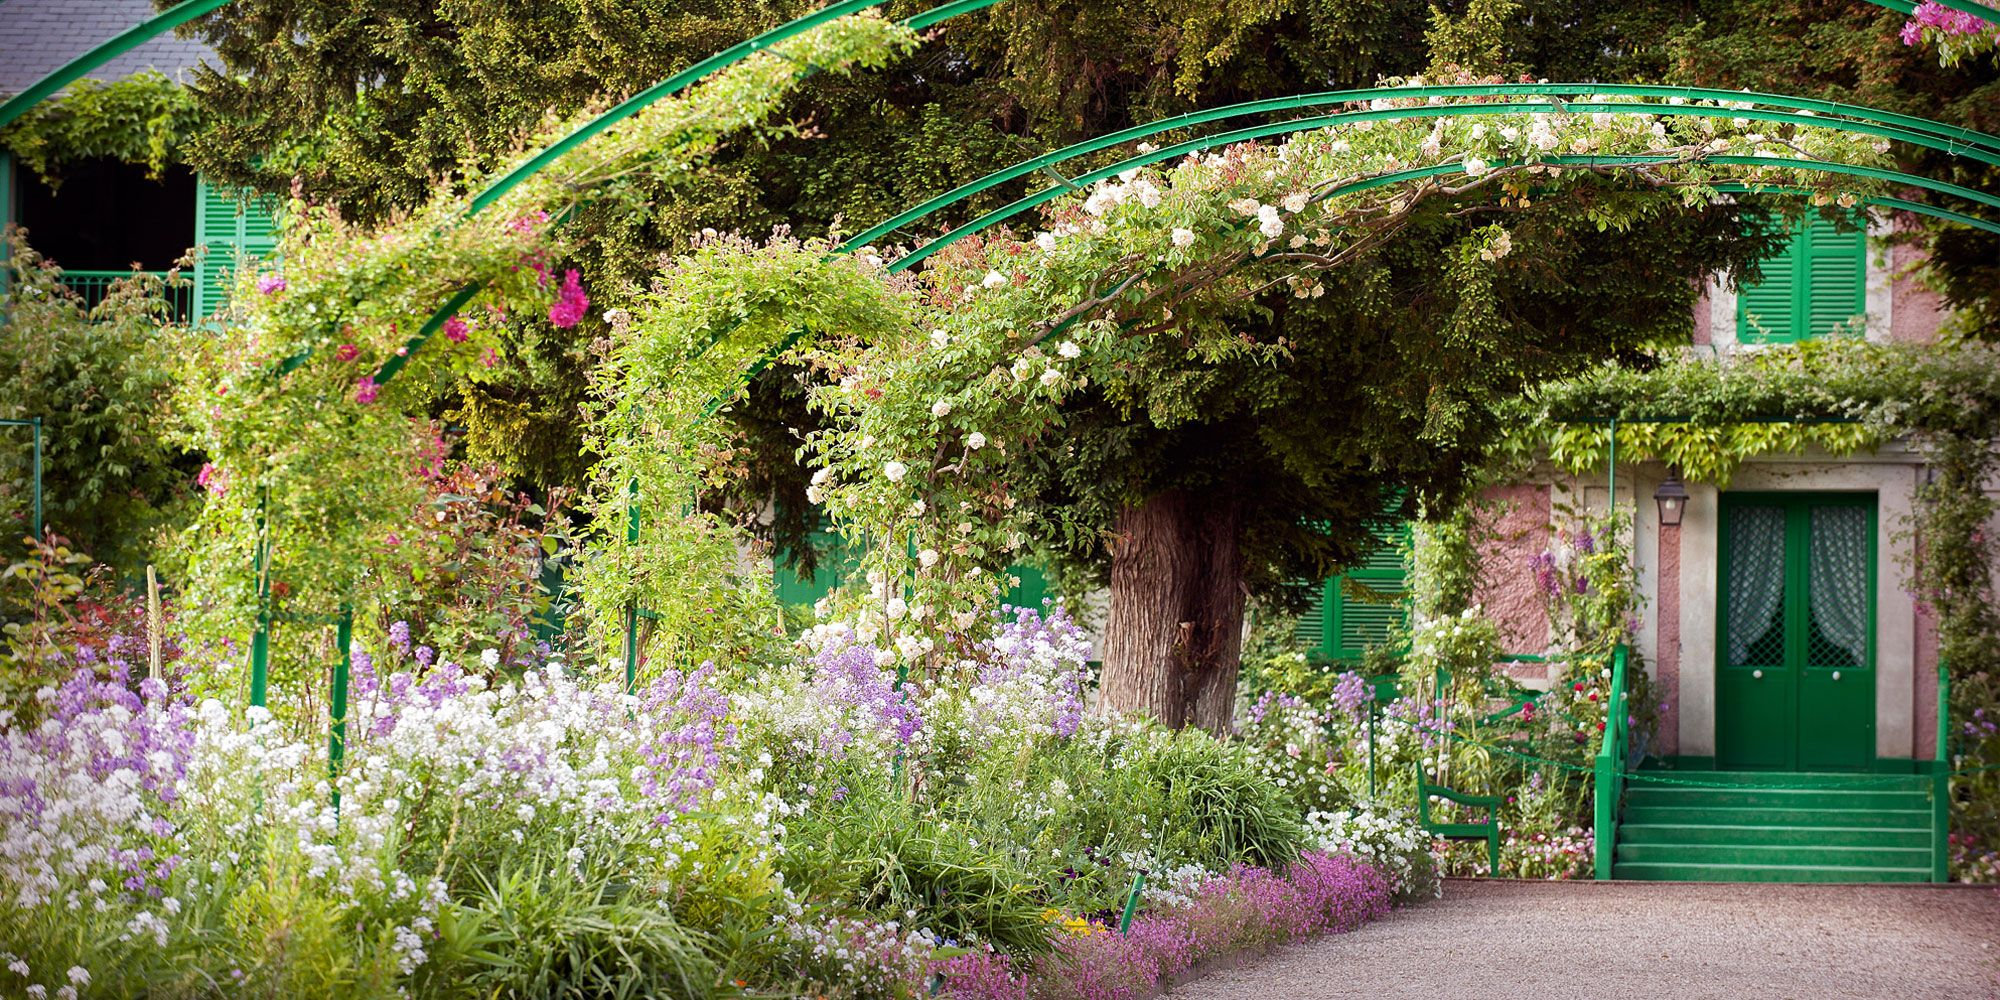 10 Museums With Gardens As Impressive As Their Art Collections